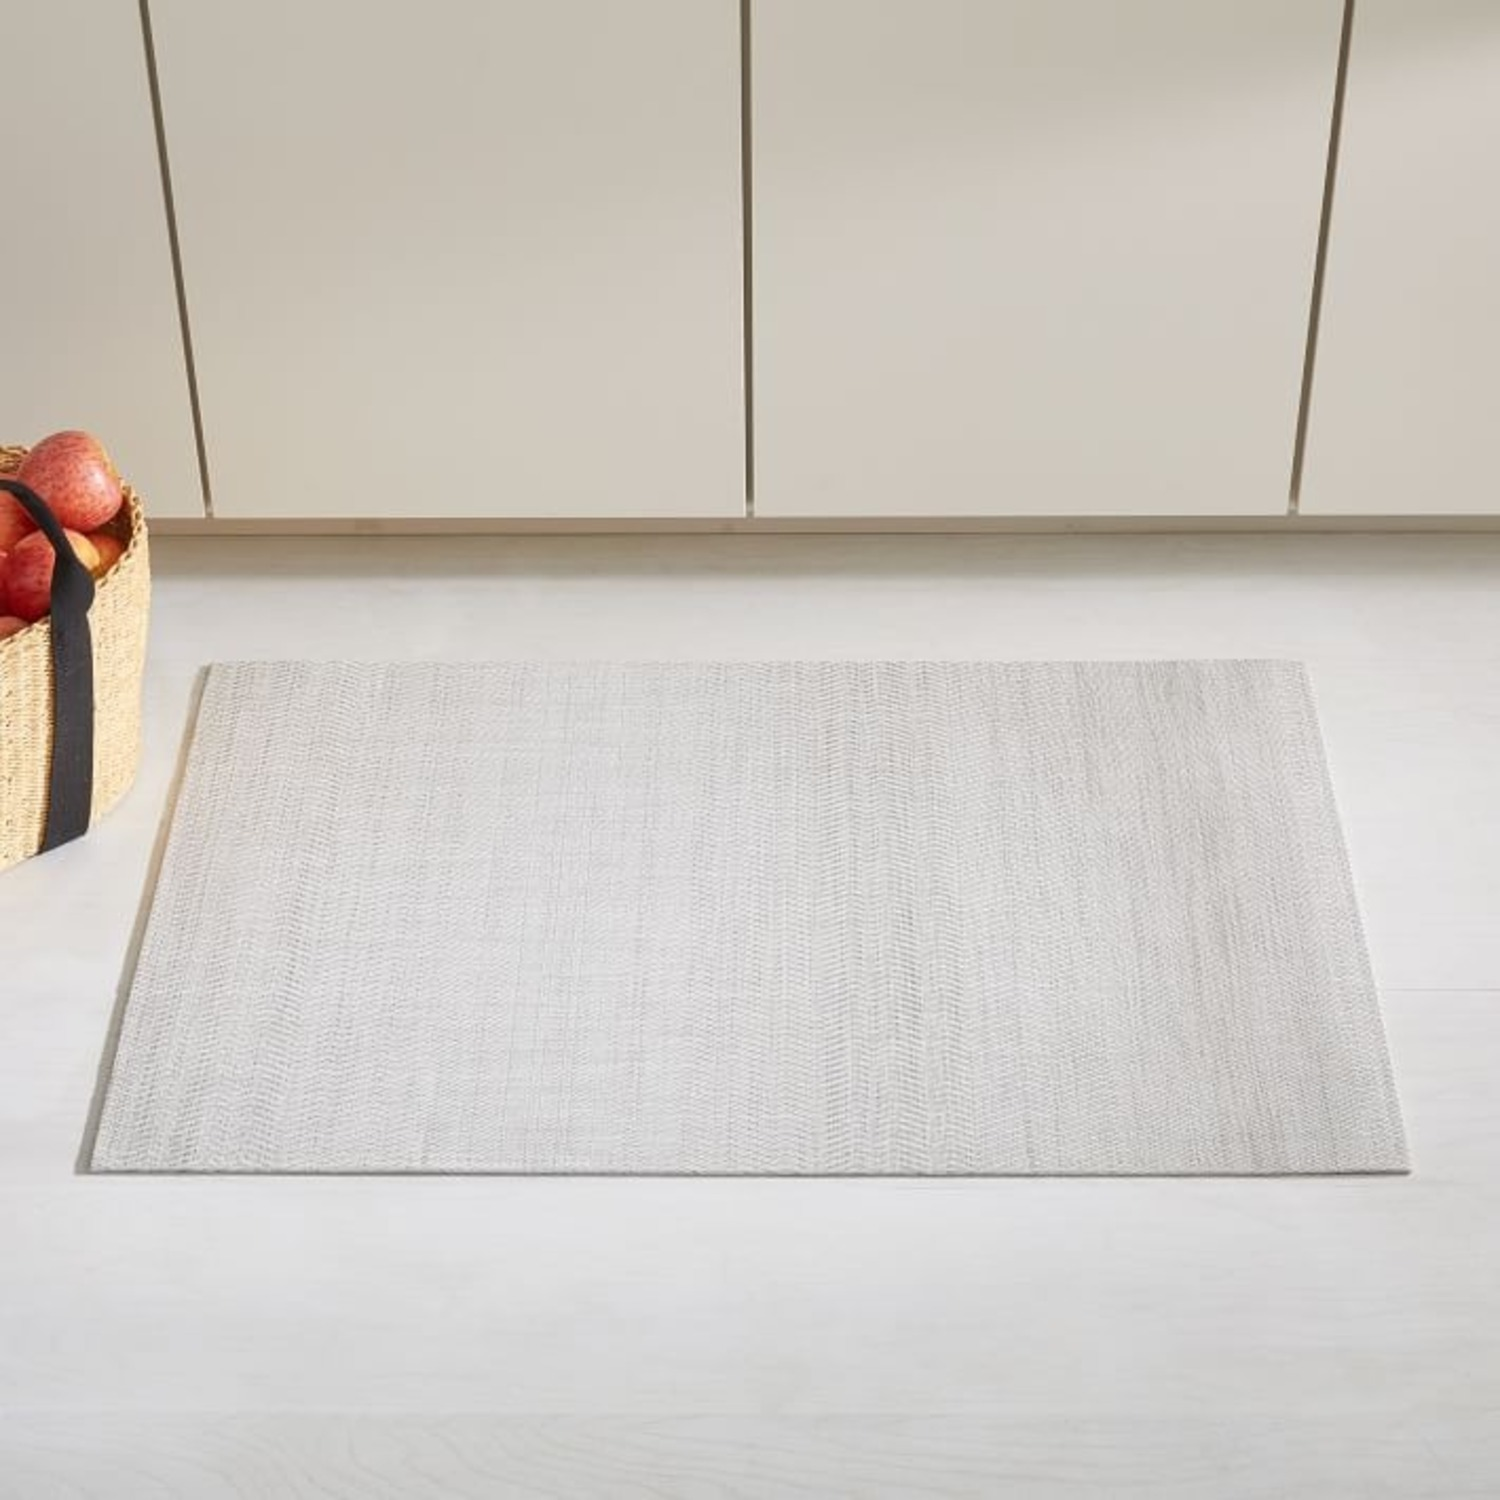 West Elm Chilewich Wave Woven Floormat - image-1